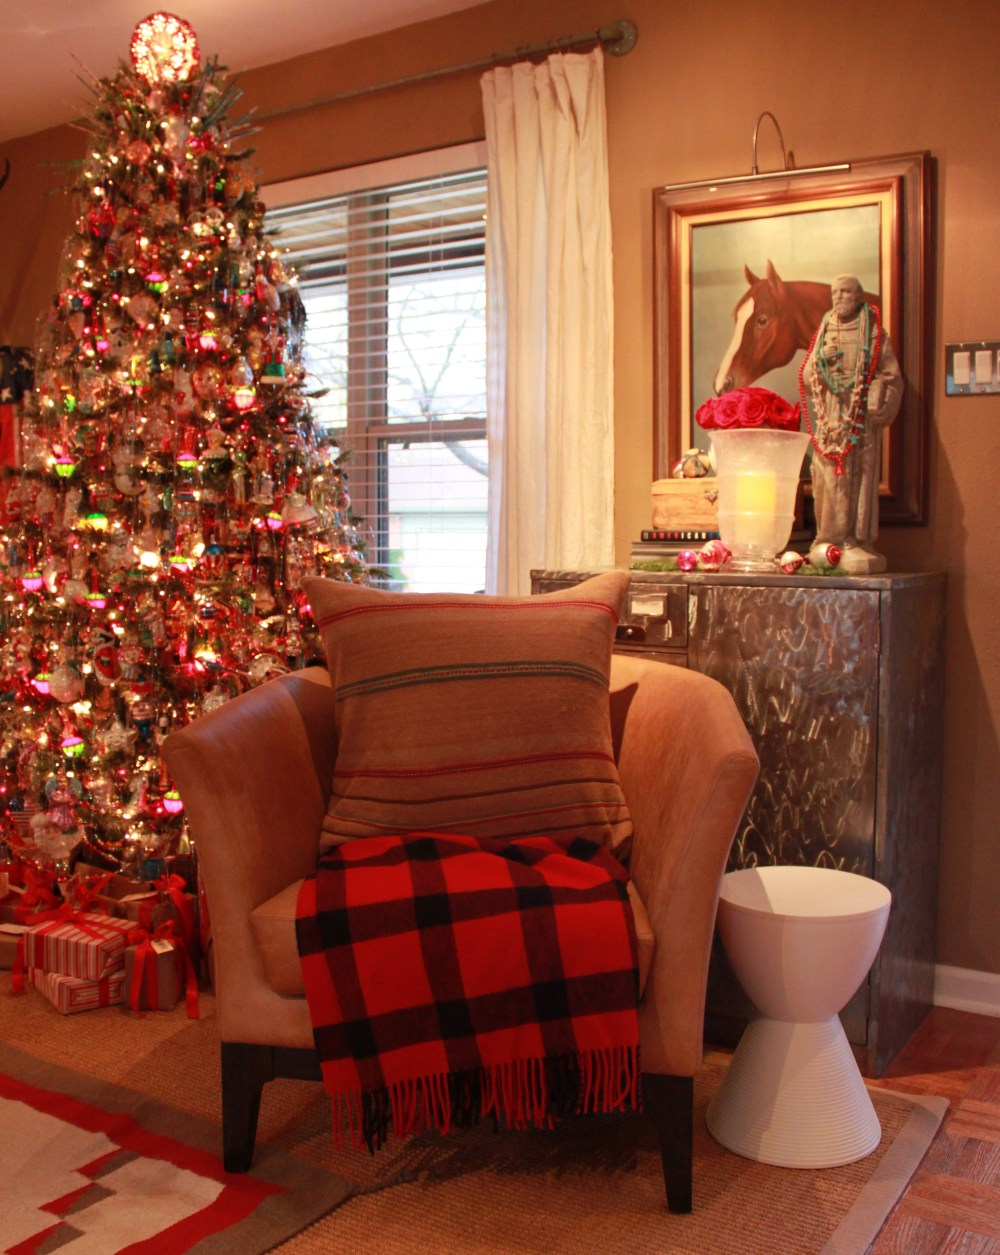 Living Room with Tree Chair and Hurricane